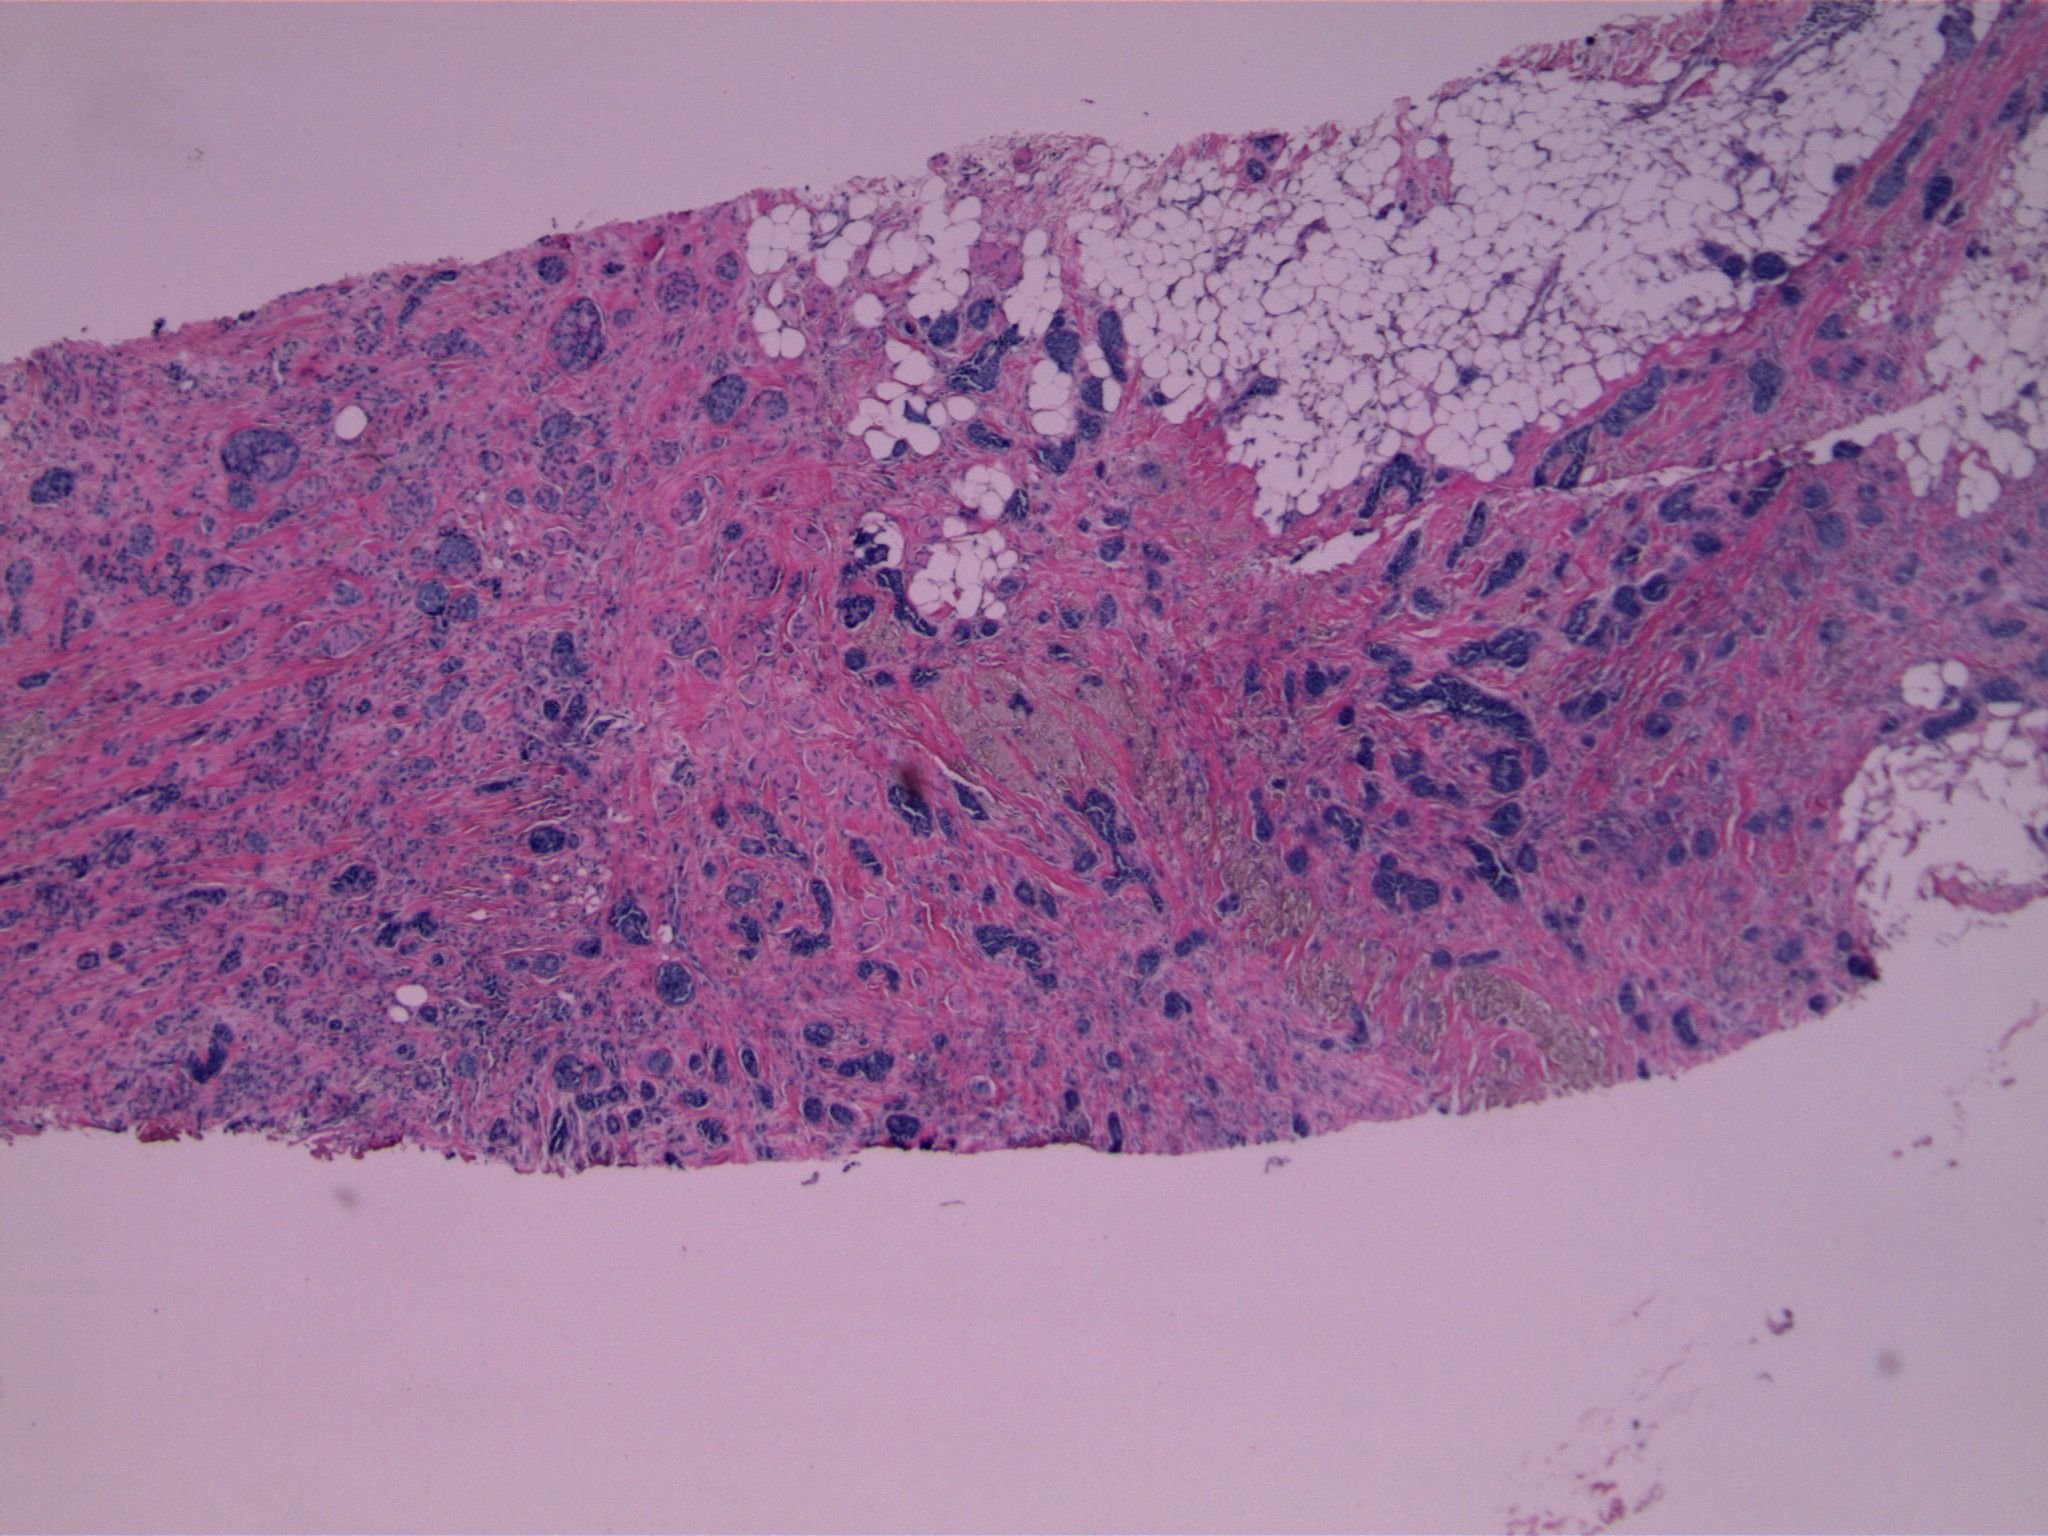 Image 1.  Small epithelial nests diffusely infiltrate stroma and fat.